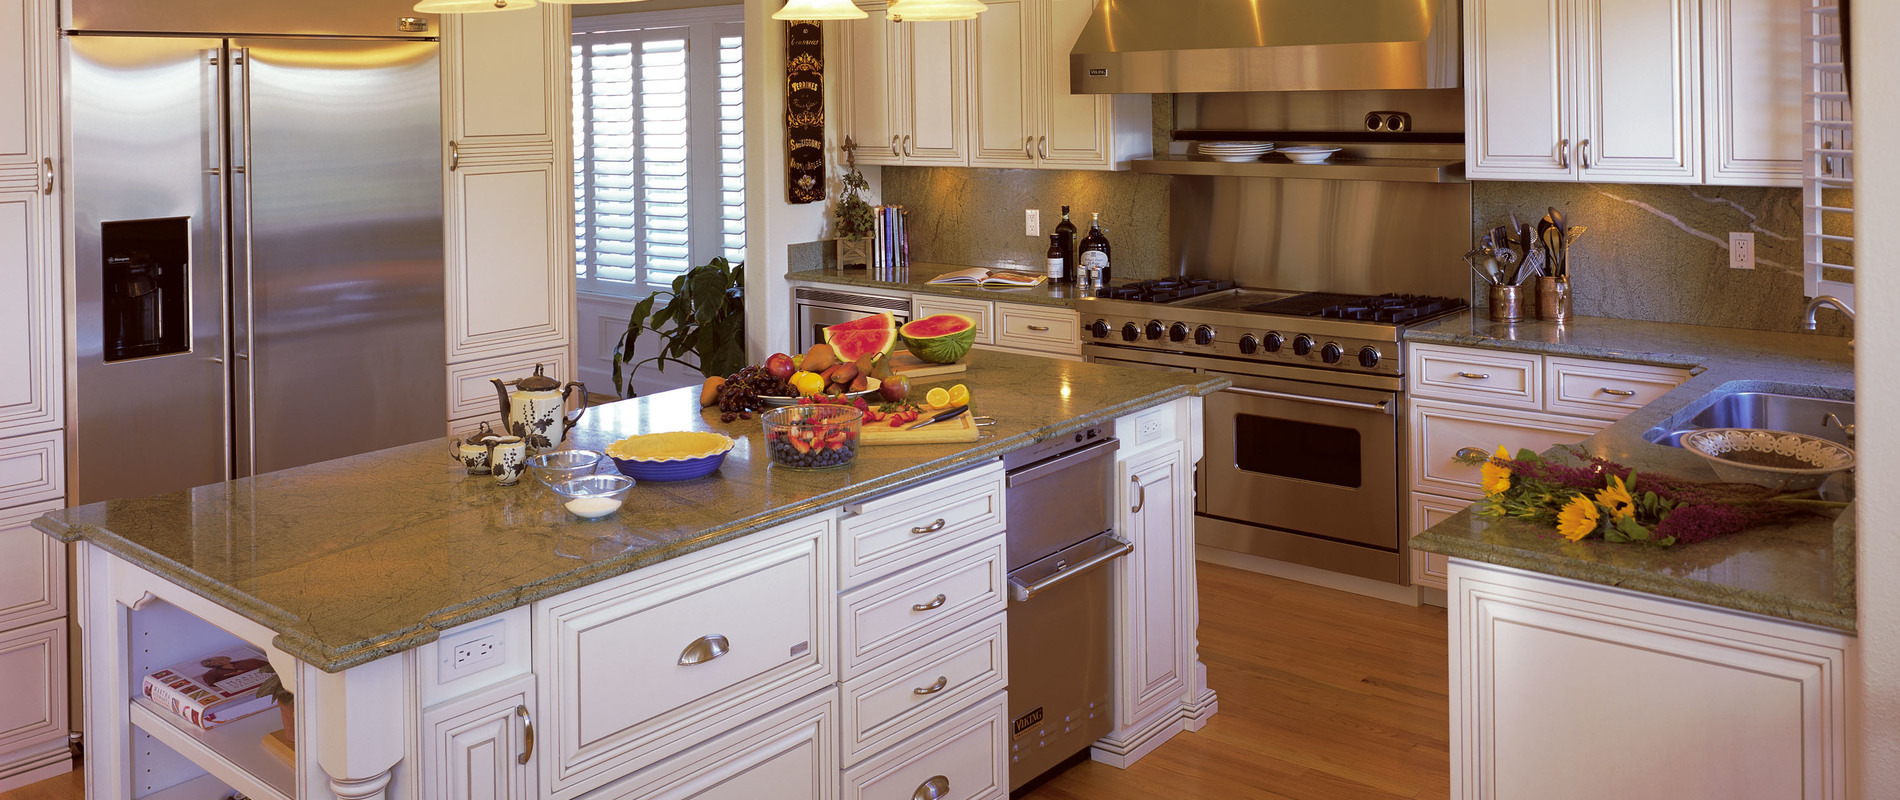 Bozeman Mt Kitchen Cabinets Cabinets Countertops